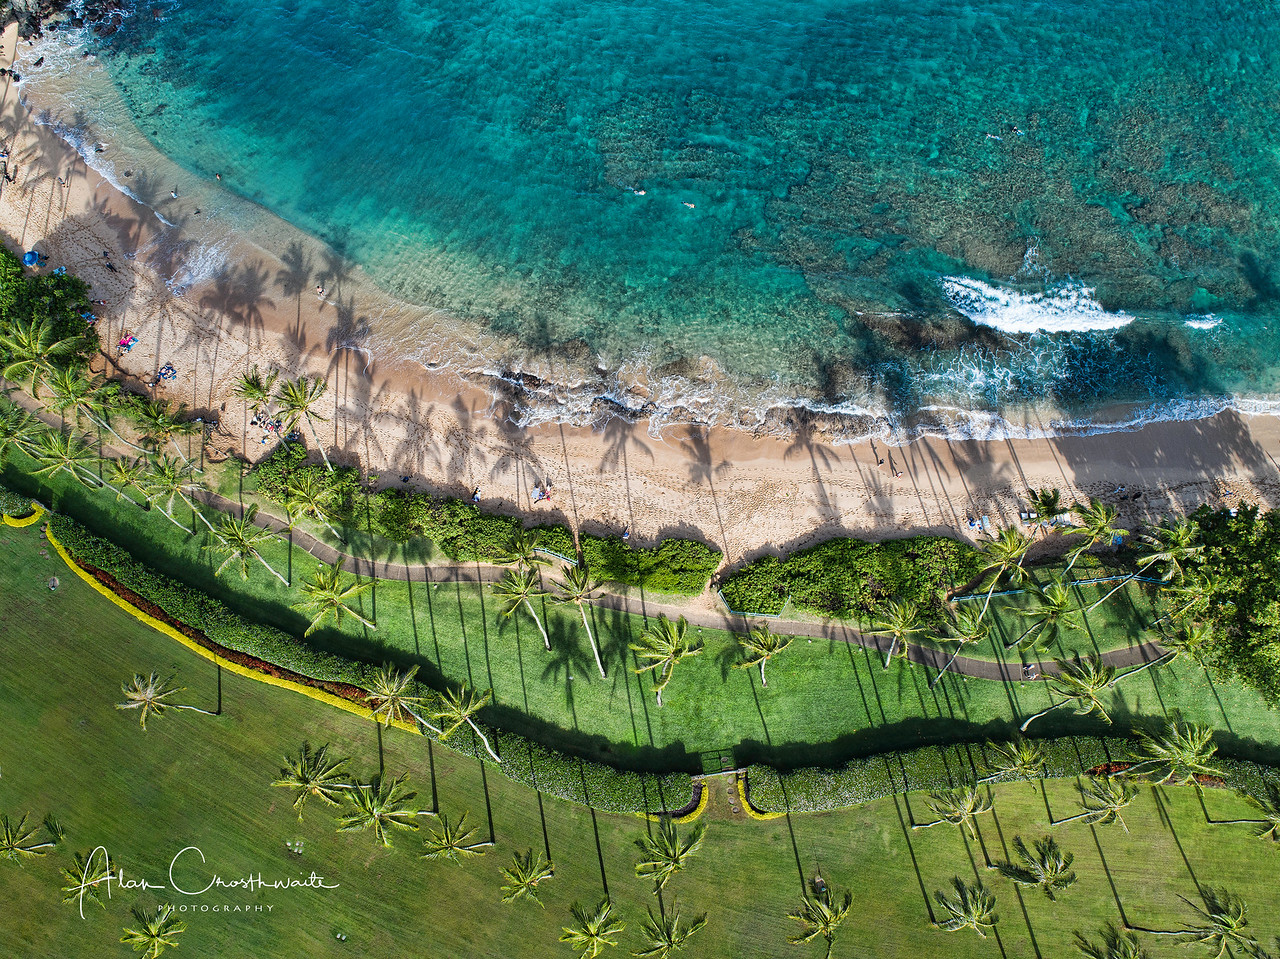 Lookdown at Kapalua Bay, Maui, Hawaii.